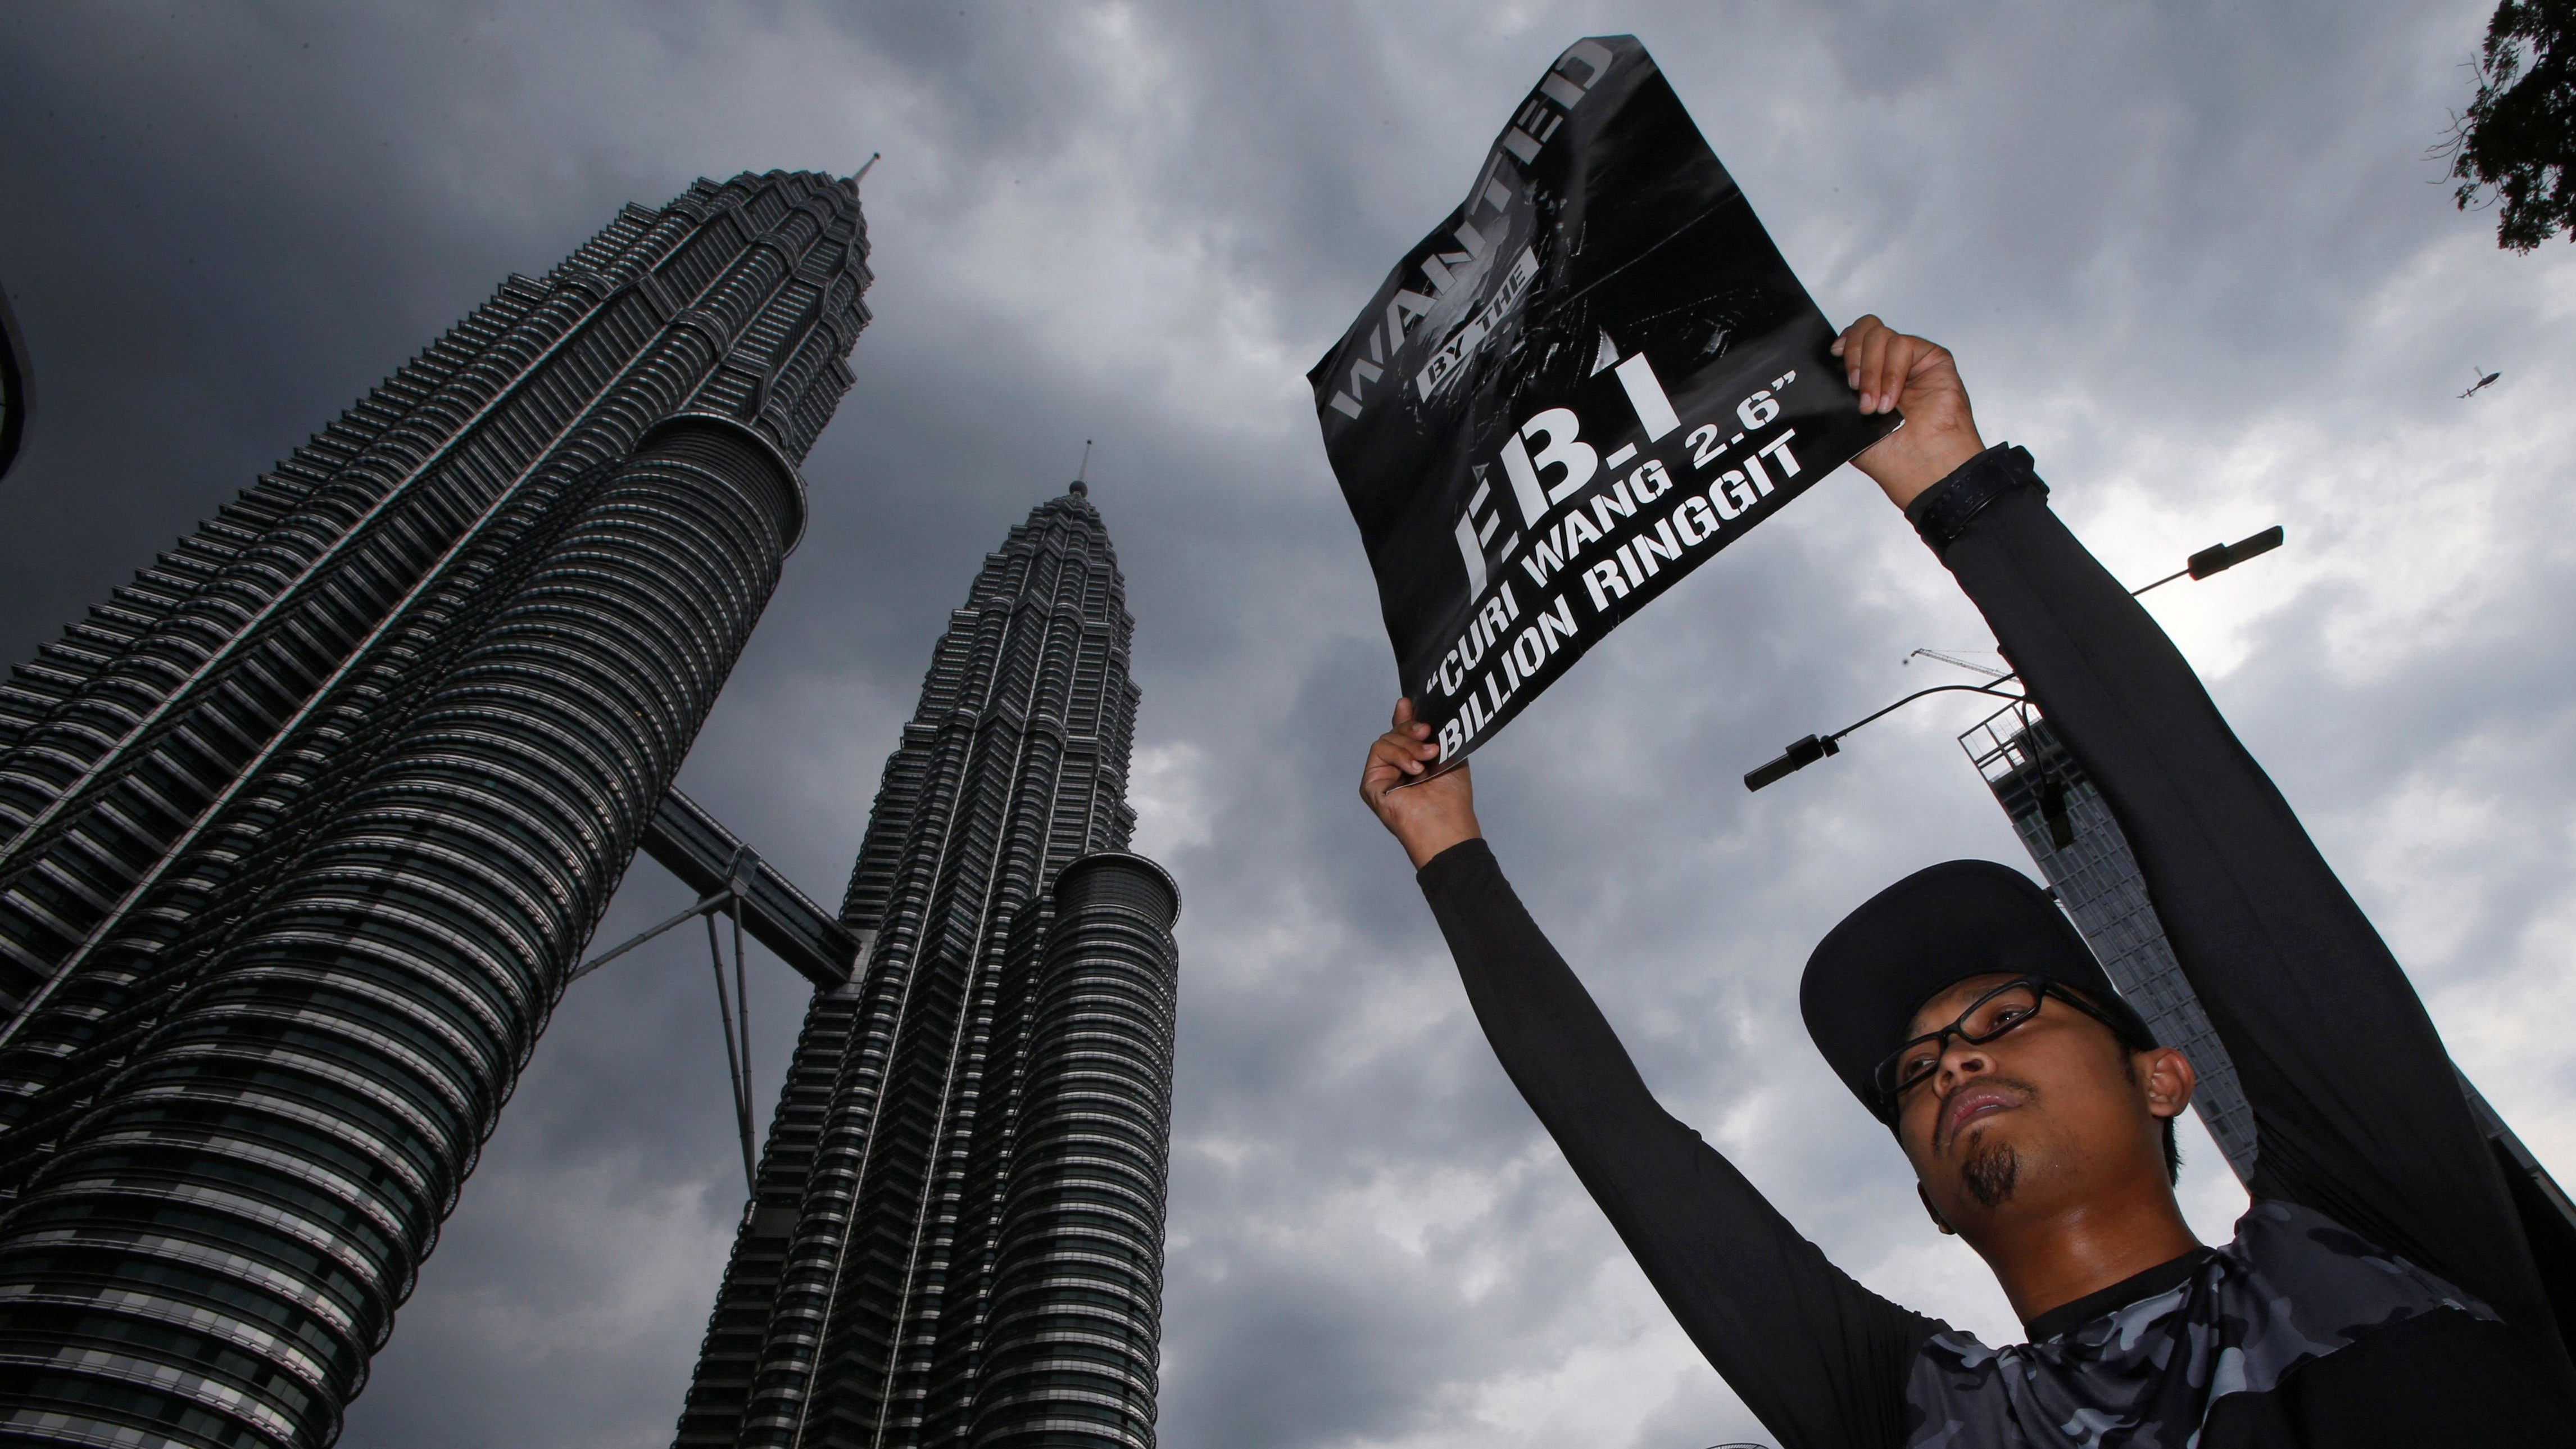 A man holds up a poster during a 1MDB protest organized by Pro-democracy group Bersih, calling for Malaysian Prime Minister Najib Abdul Razak to resign, in Kuala Lumpur, Malaysia November 19, 2016.